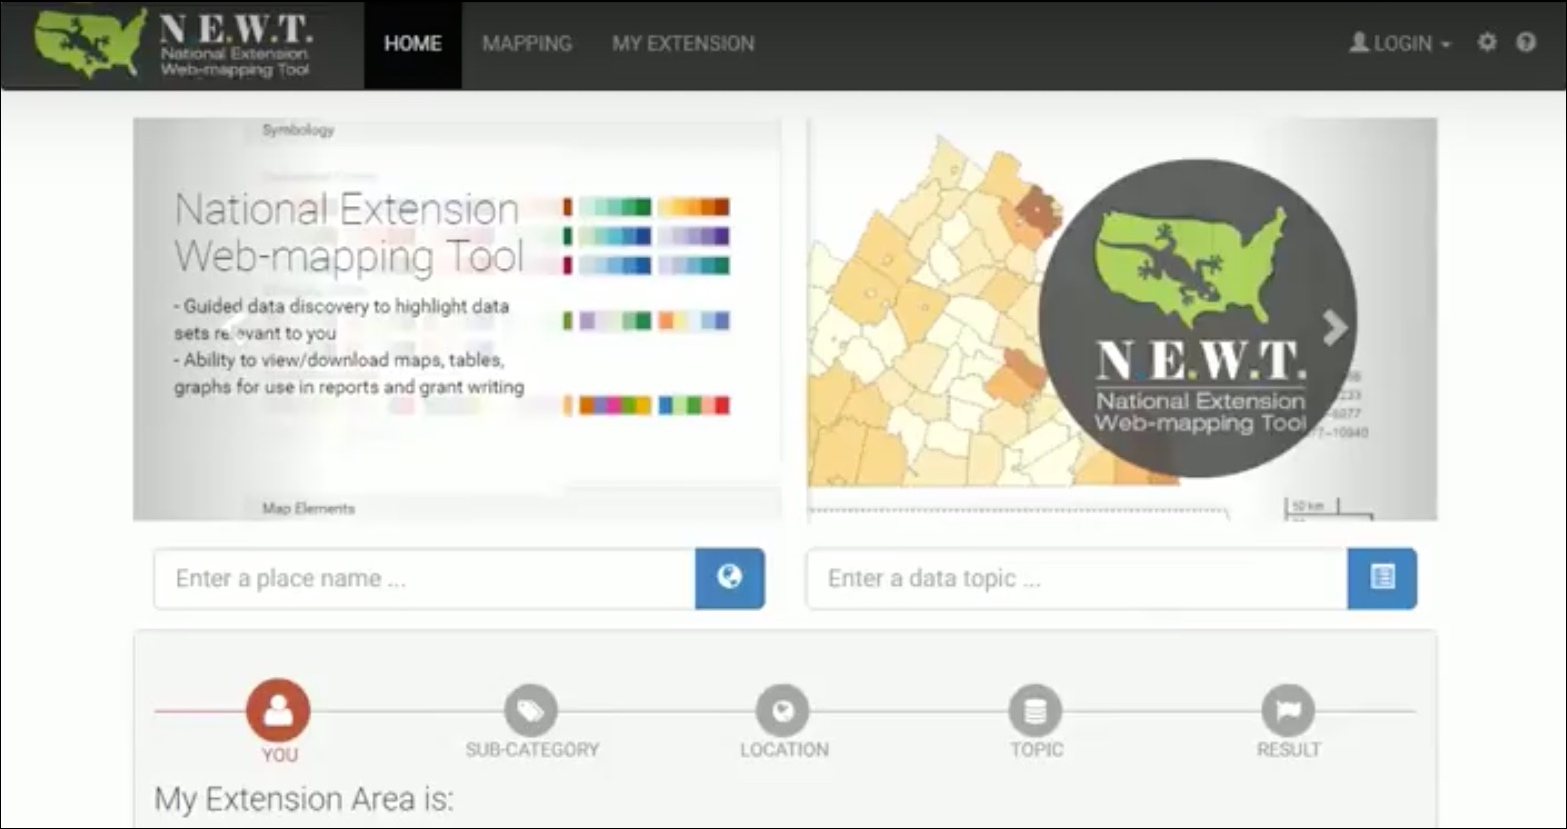 National Extension Web-mapping Tool